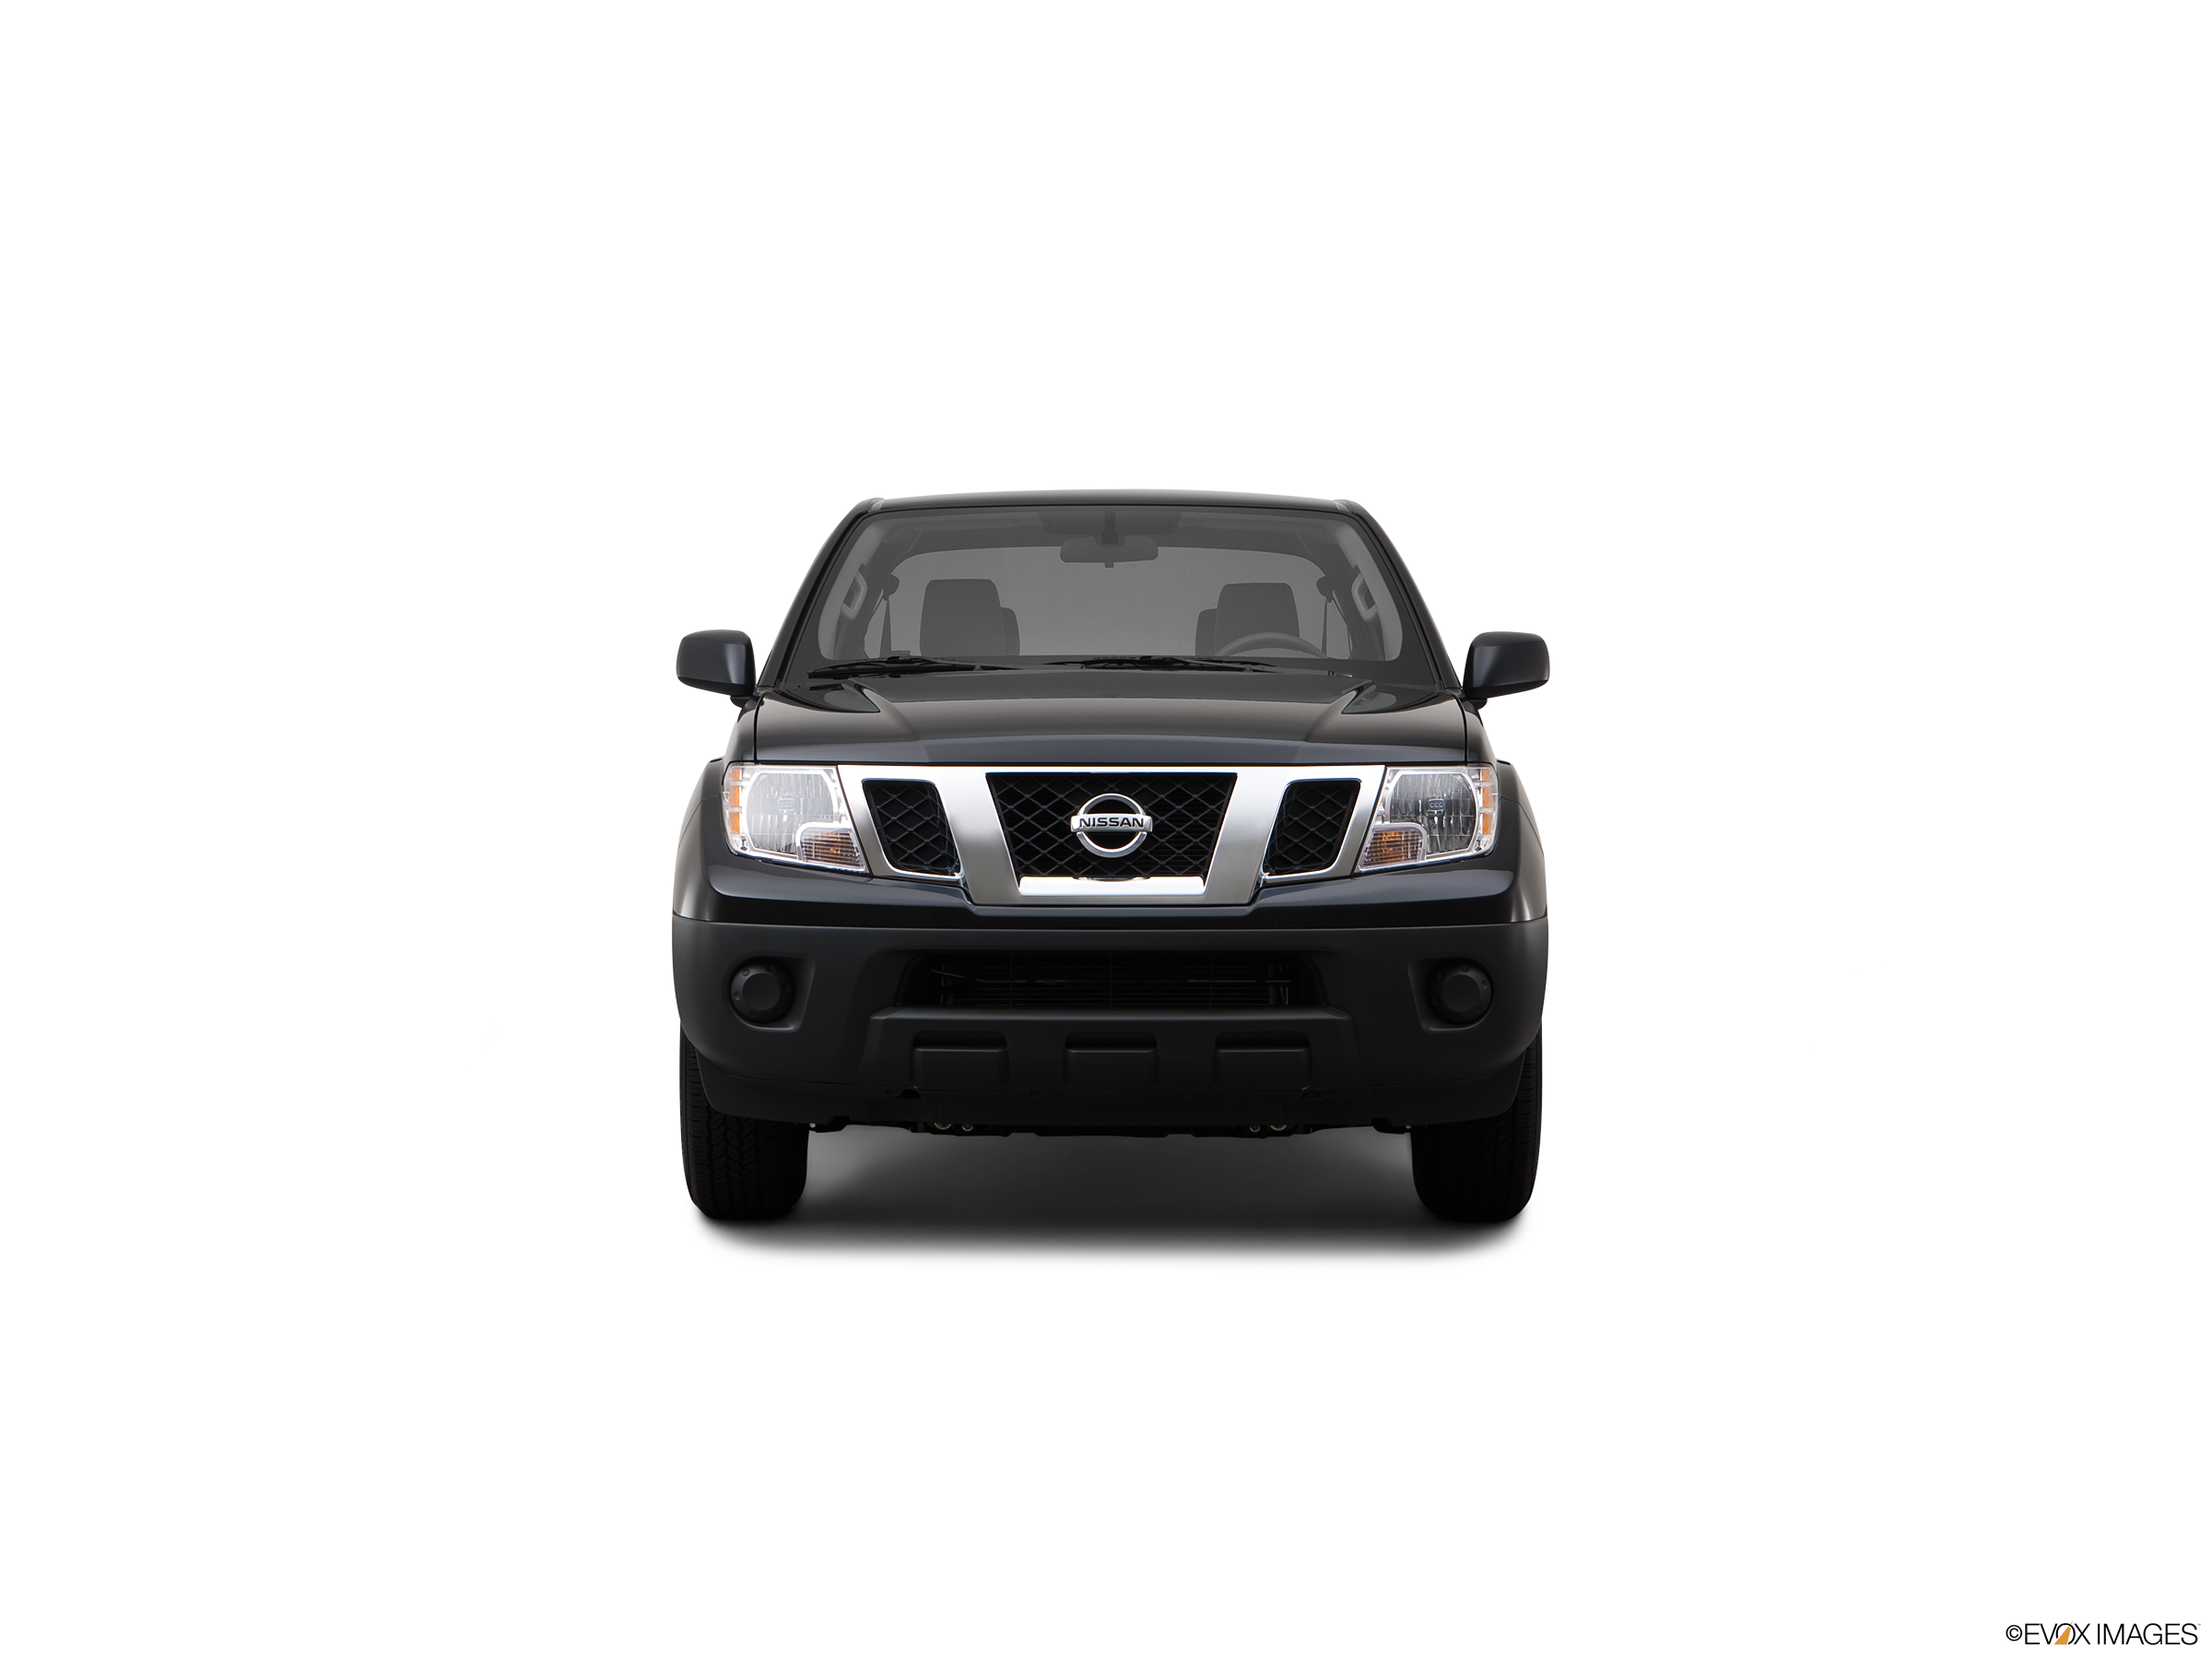 Driver side WITH install kit 2014 Nissan FRONTIER KING CAB Post mount spotlight -Black 6 inch 100W Halogen